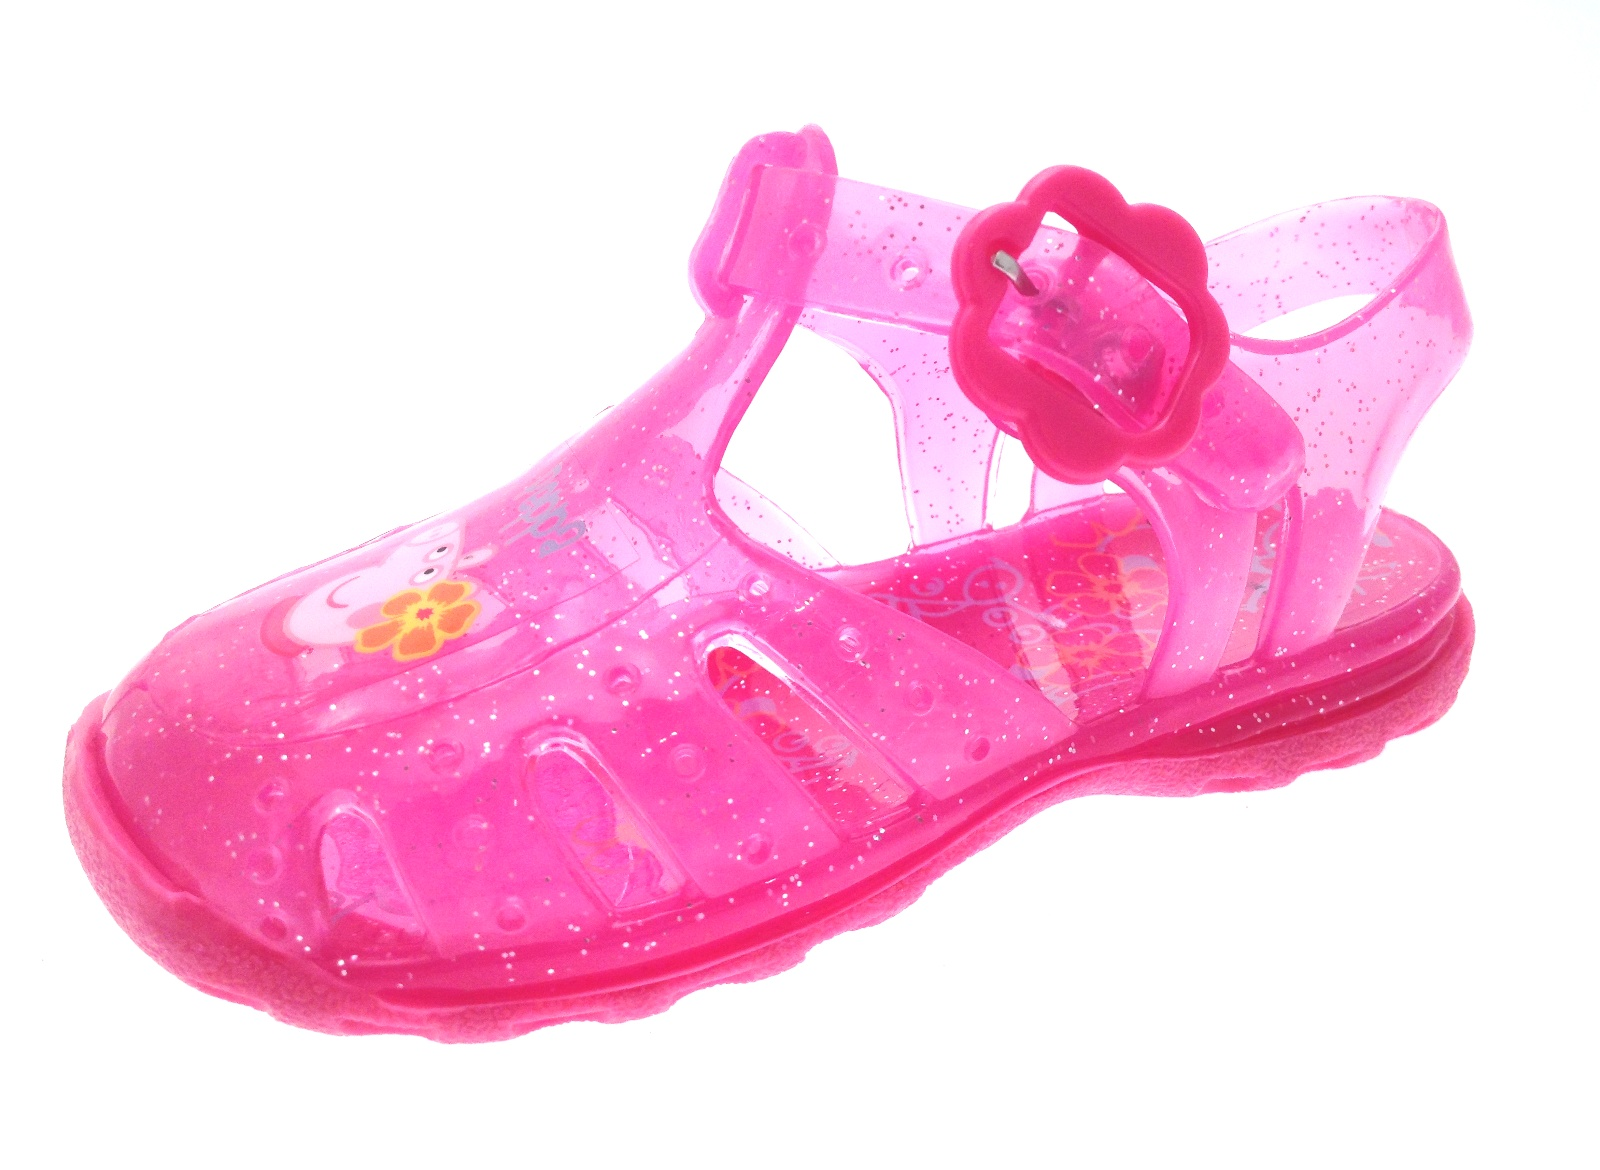 e816535ebcb0 Girls Peppa Pig Range Clogs Trainers Jellies Sandals Kids Jelly ...